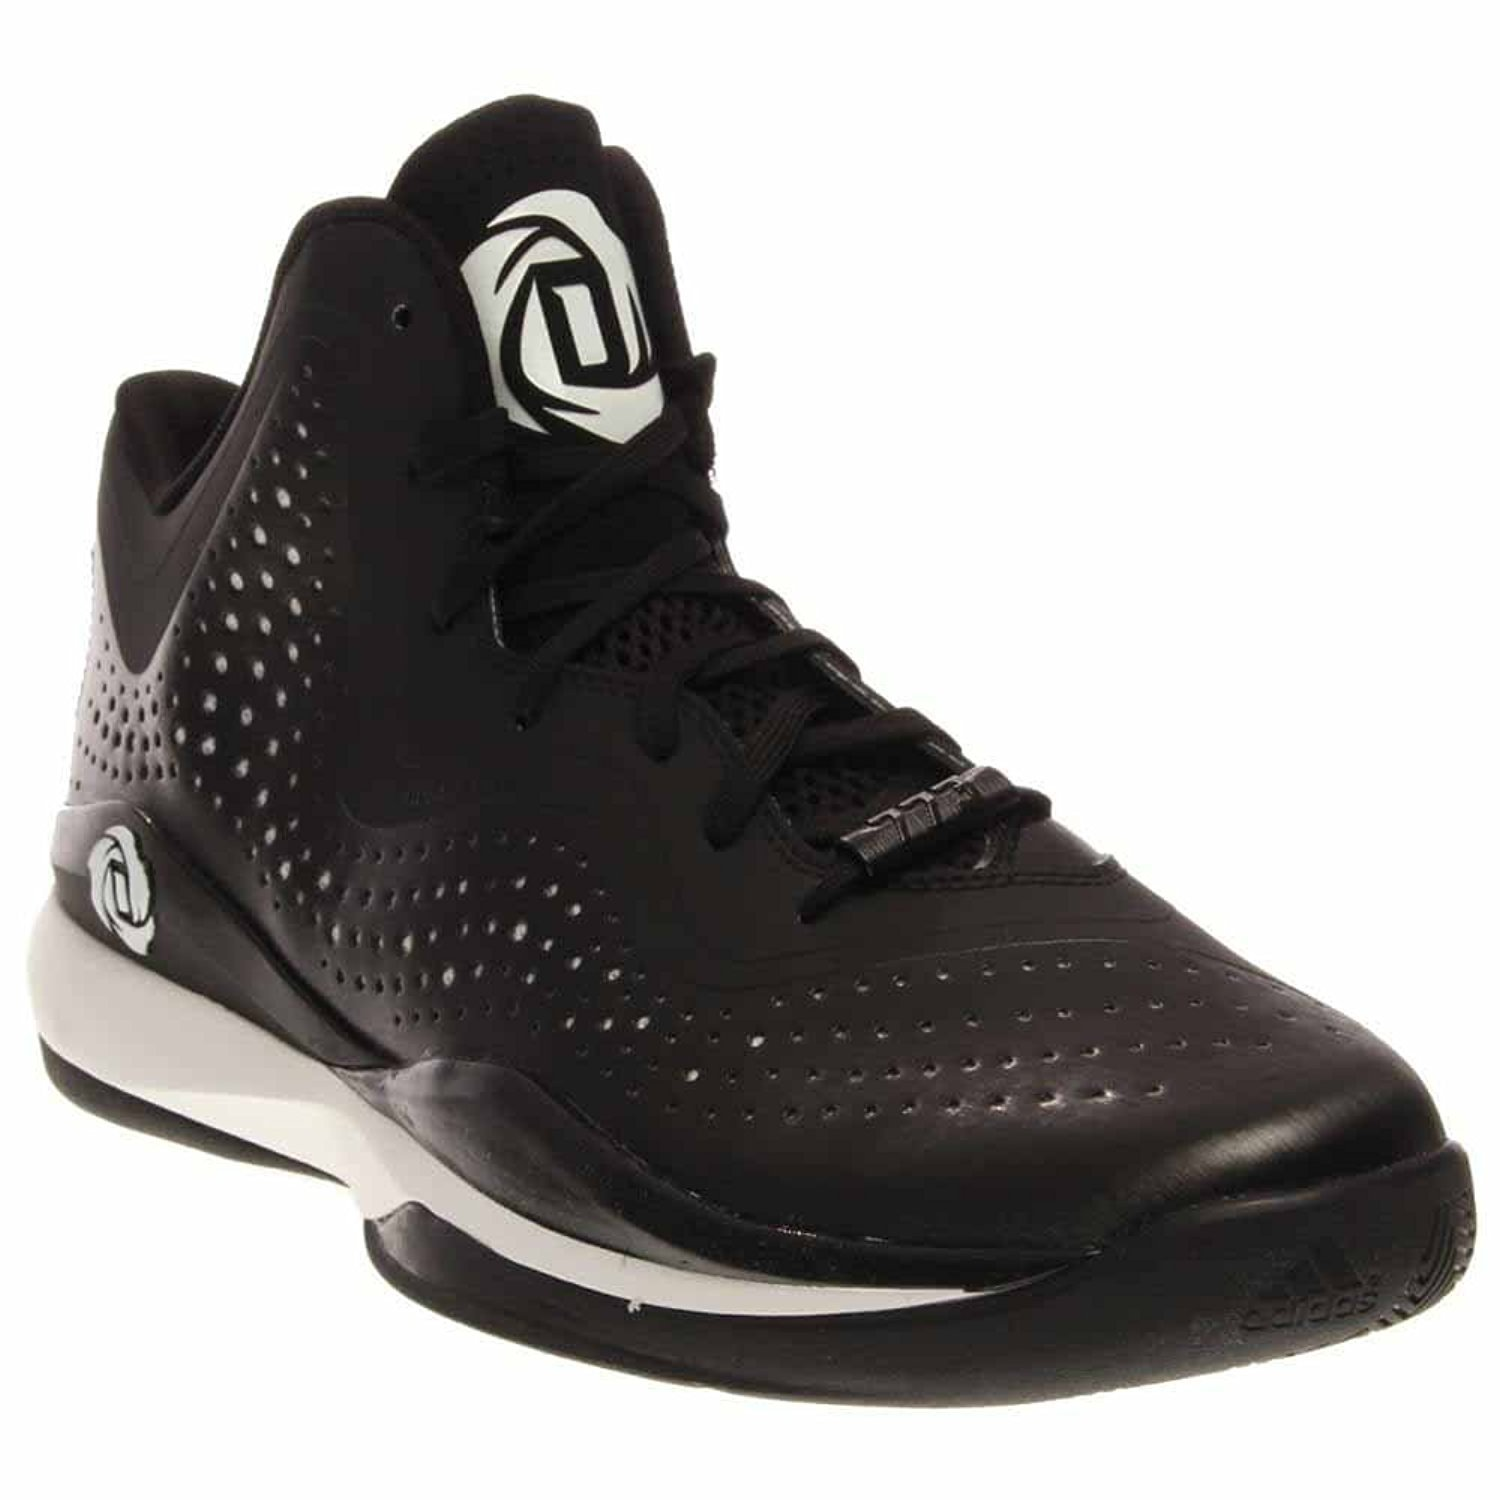 a25f0b93b41 usa adidas d rose 773 iii light onyx black white mens basketball shoes 09.0  a8790 2a92e  real picture 13 of 13 c5b41 d29dd